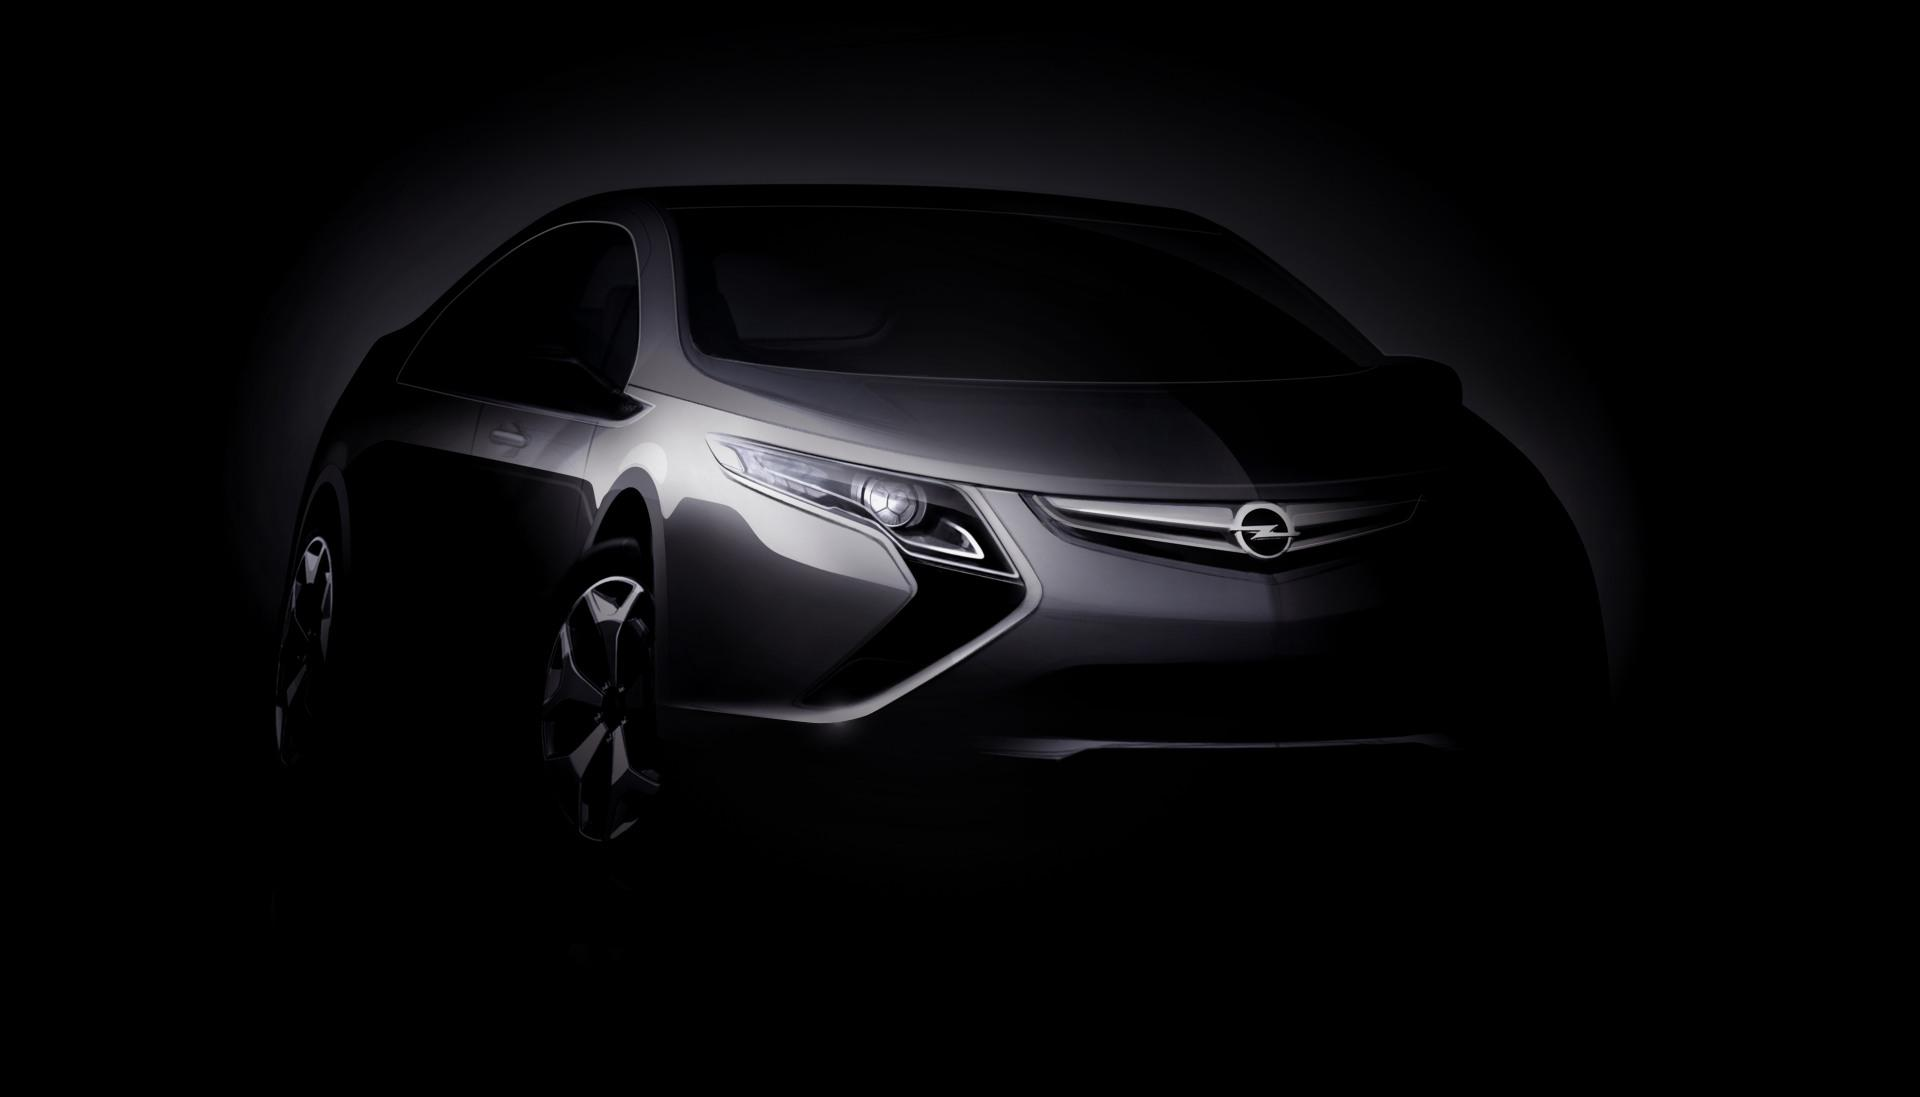 Opel Ampera Wallpaper Opel Cars Wallpapers Hd Wallpapers